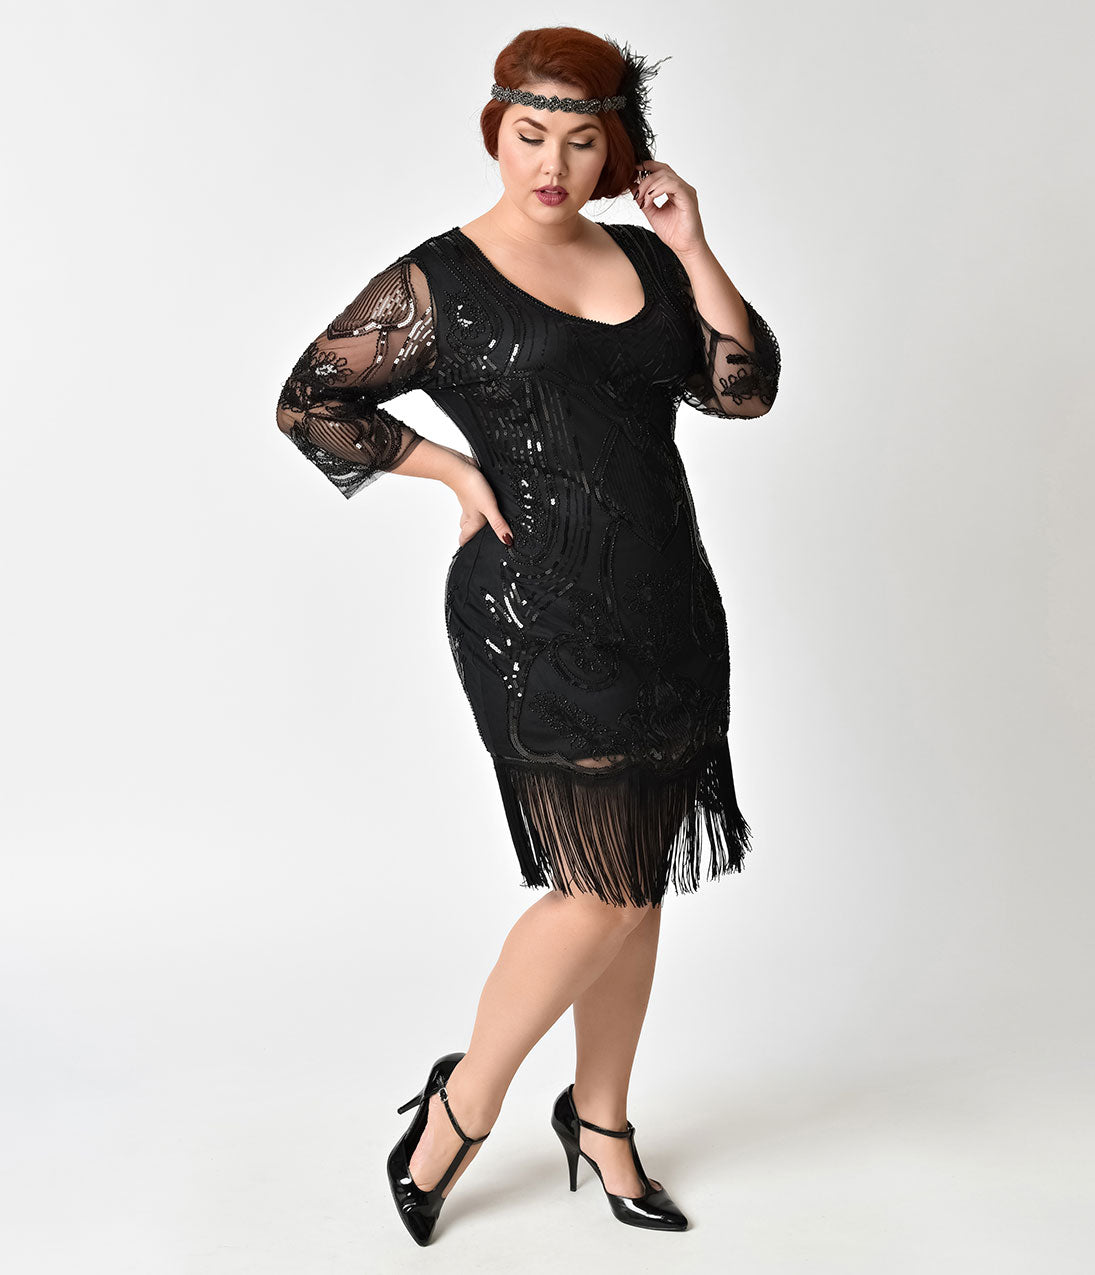 Vintage Evening Dresses and Formal Evening Gowns Unique Vintage Plus Size Black Beaded  Sequin Margaux Sleeved Fringe Flapper Dress $110.00 AT vintagedancer.com